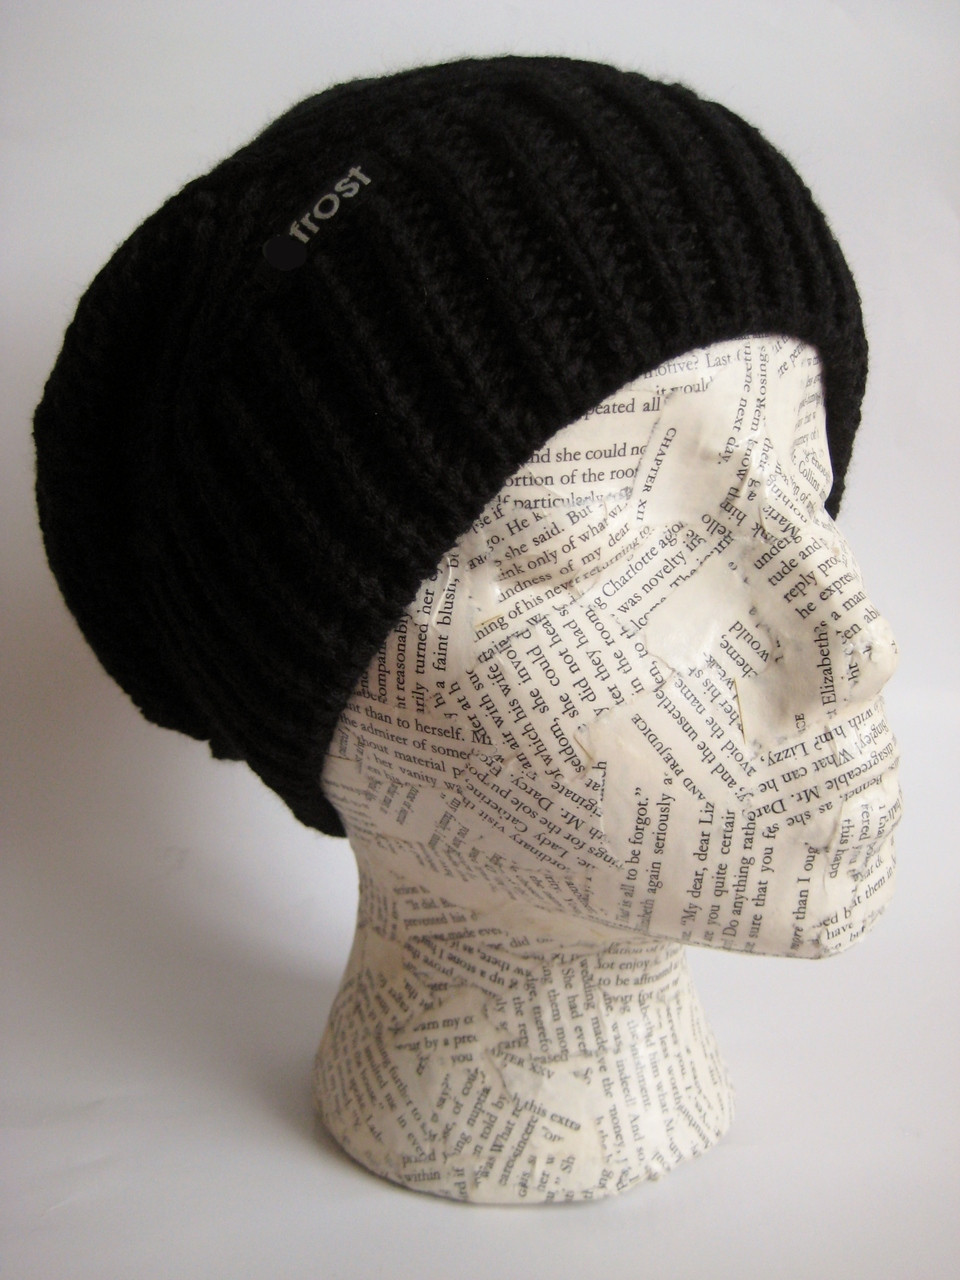 91eaf1f6d23 Slouchy Beanie Hat. Slouchy winter hat for women. Loading zoom